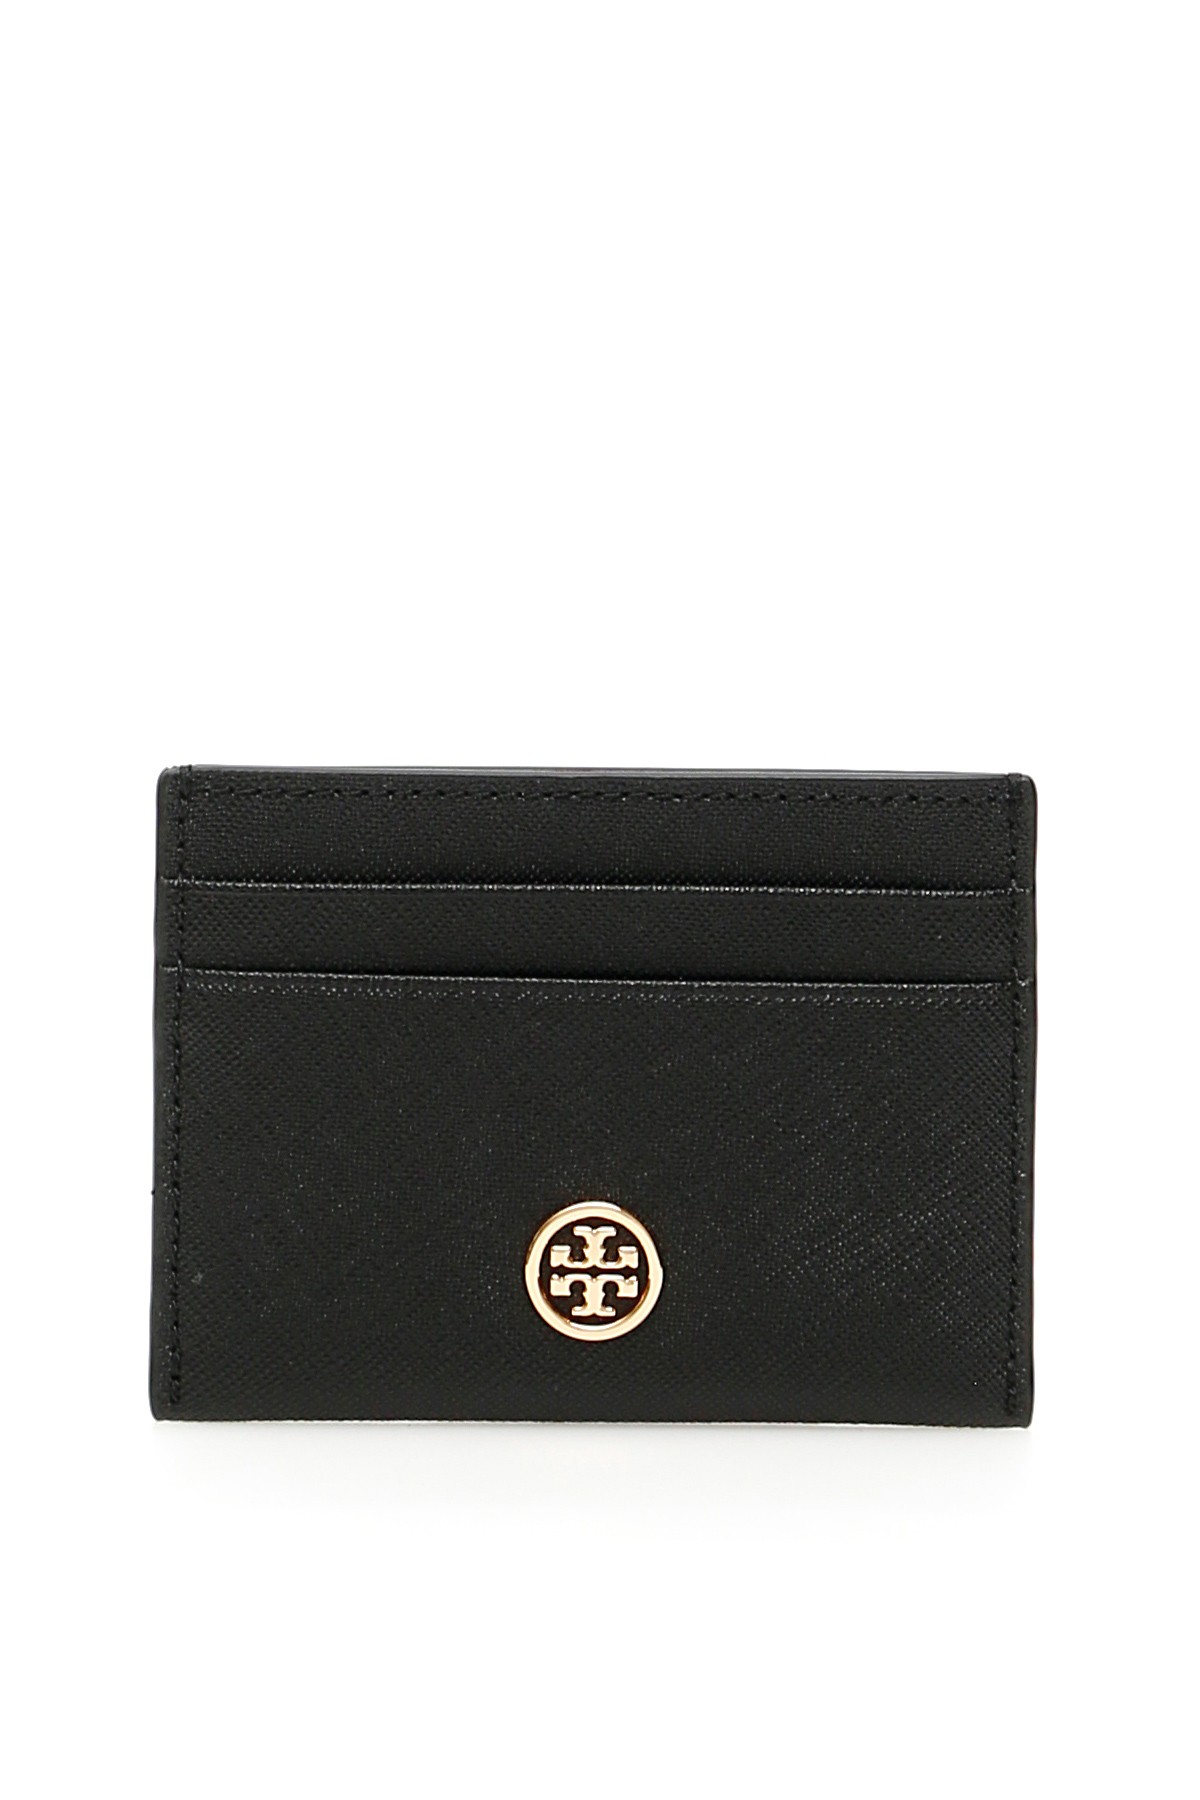 TORY BURCH ROBINSON CARDHOLDER OS Black Leather